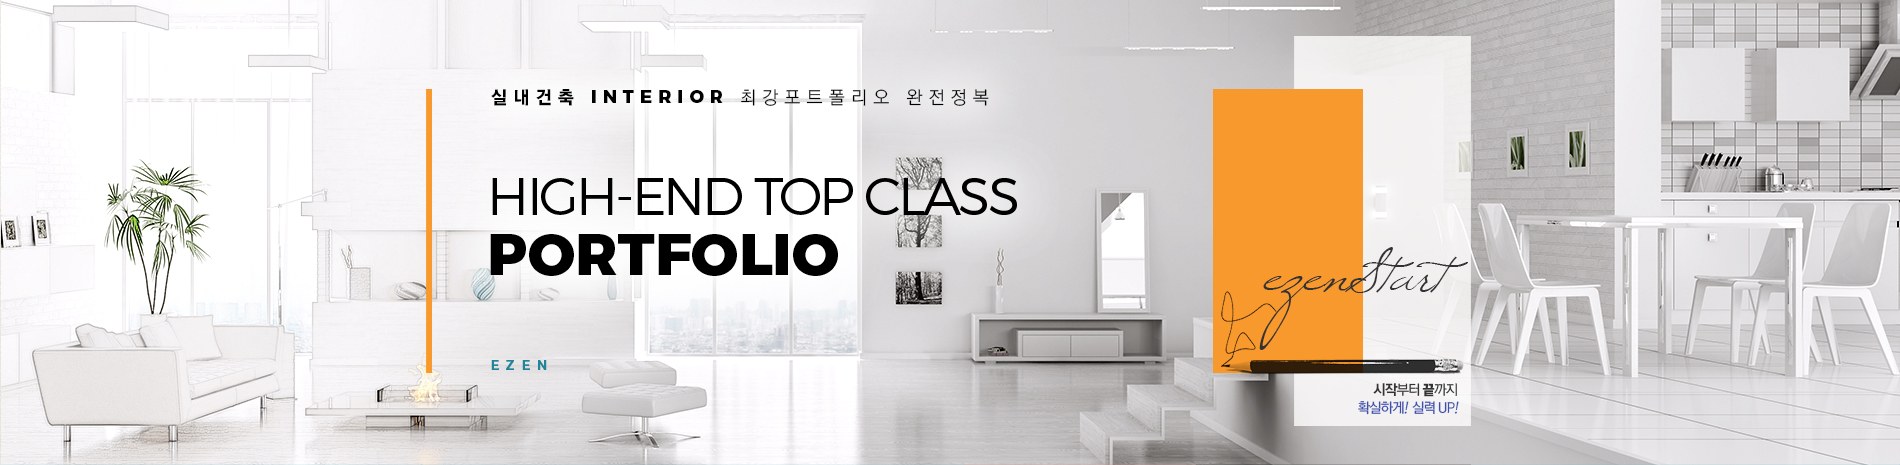 실내건축인테리어 HIGH-END  TOP CLASS PORTFOLIO